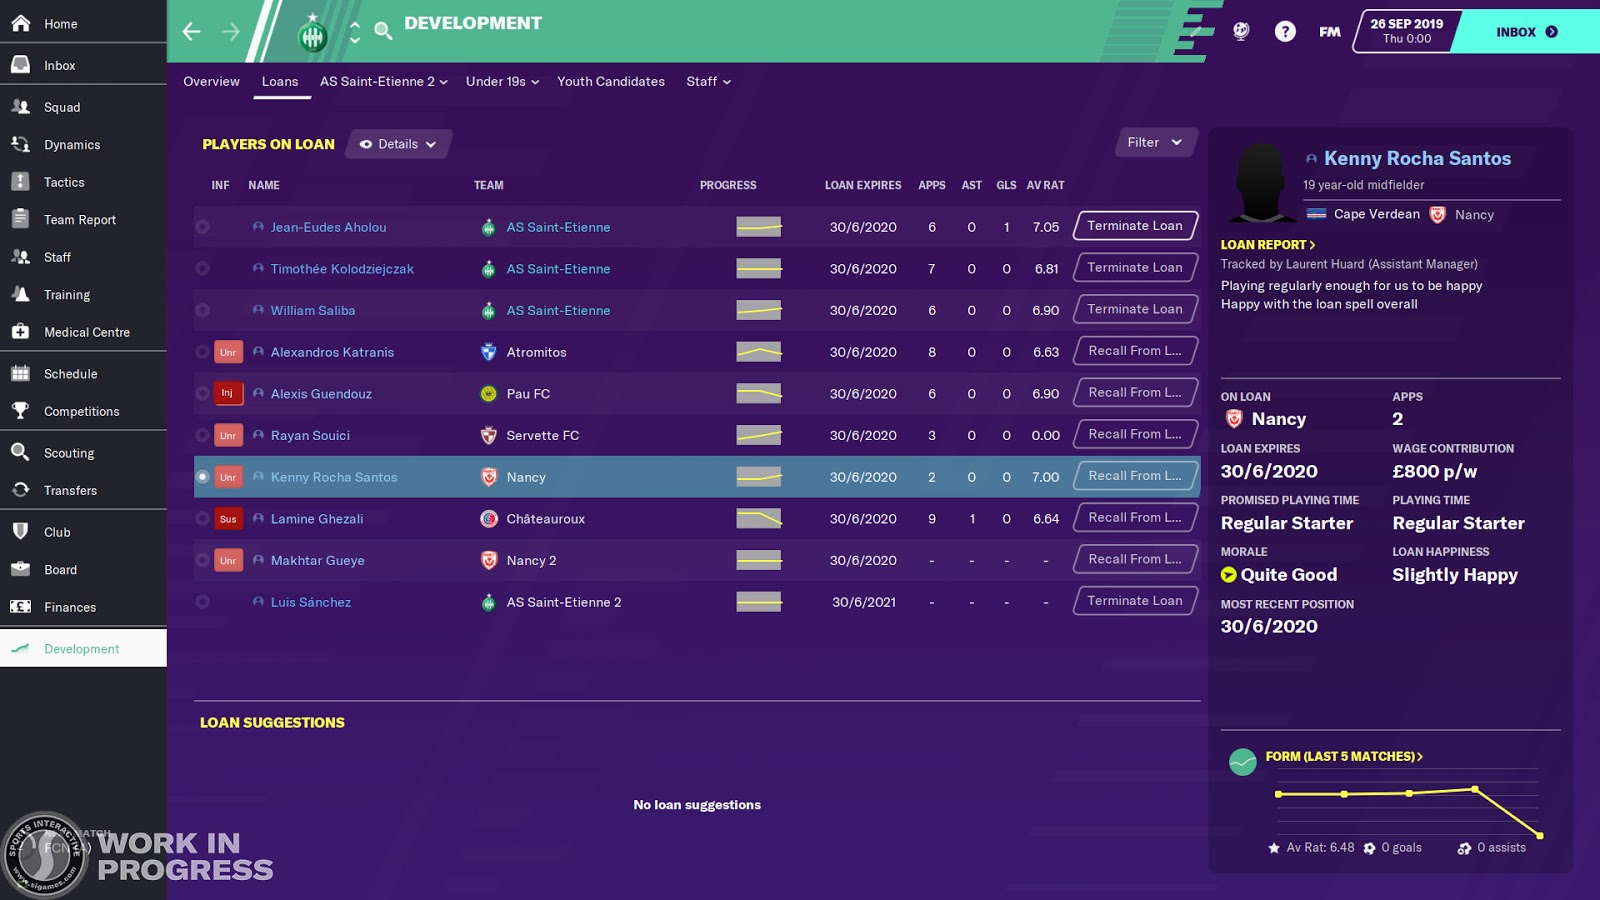 The loans overview screen in Football Manager 2020